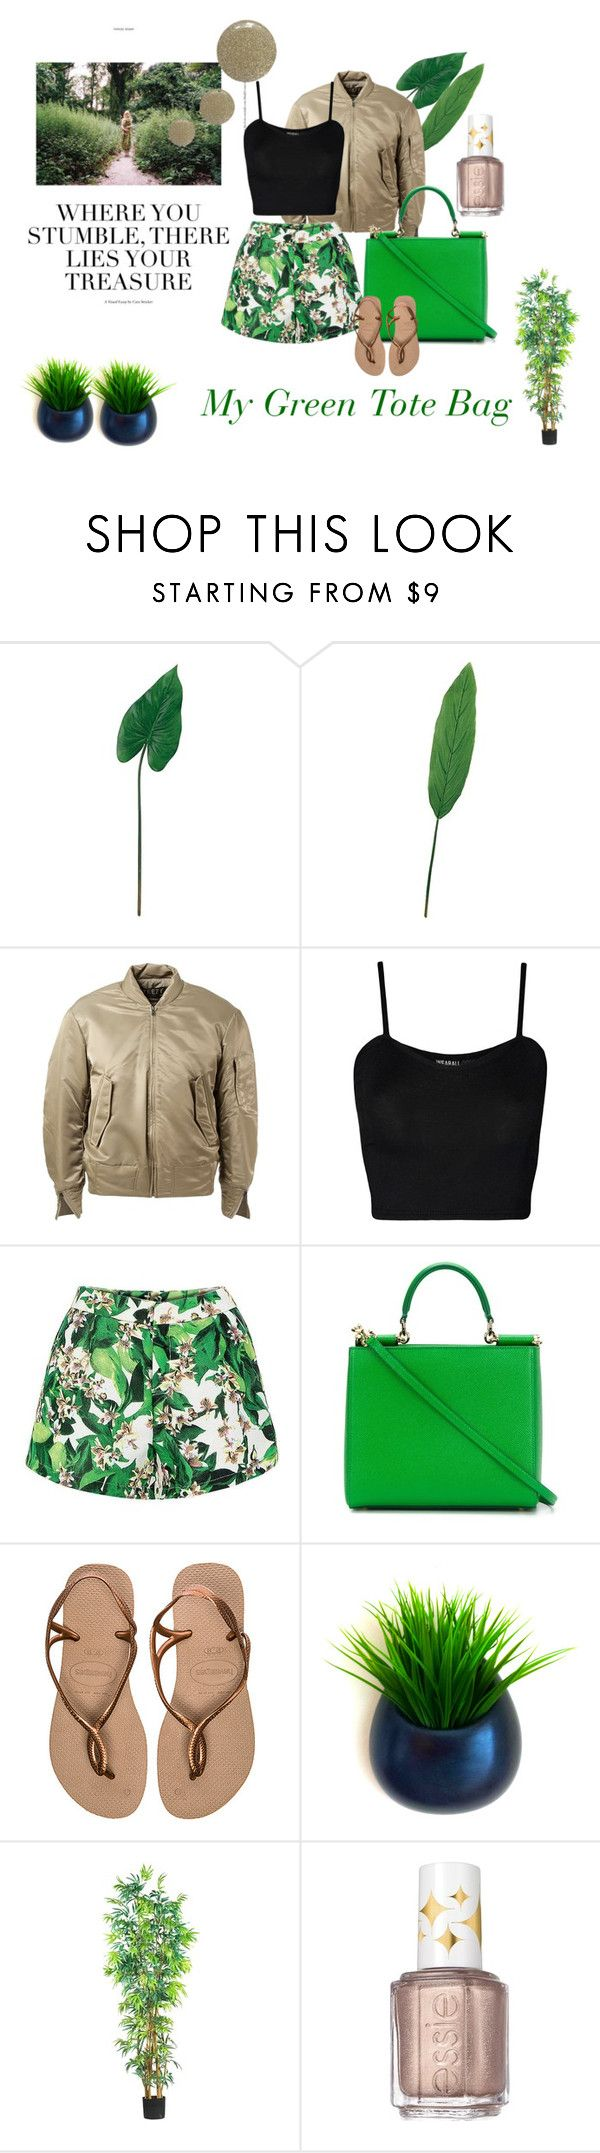 """""""My Green Tote Bag"""" by stephanie-hafkamp ❤ liked on Polyvore featuring Laura Cole, adidas Originals, WearAll, Dolce&Gabbana, Havaianas, Nearly Natural, Essie, Topshop, women's clothing and women's fashion"""